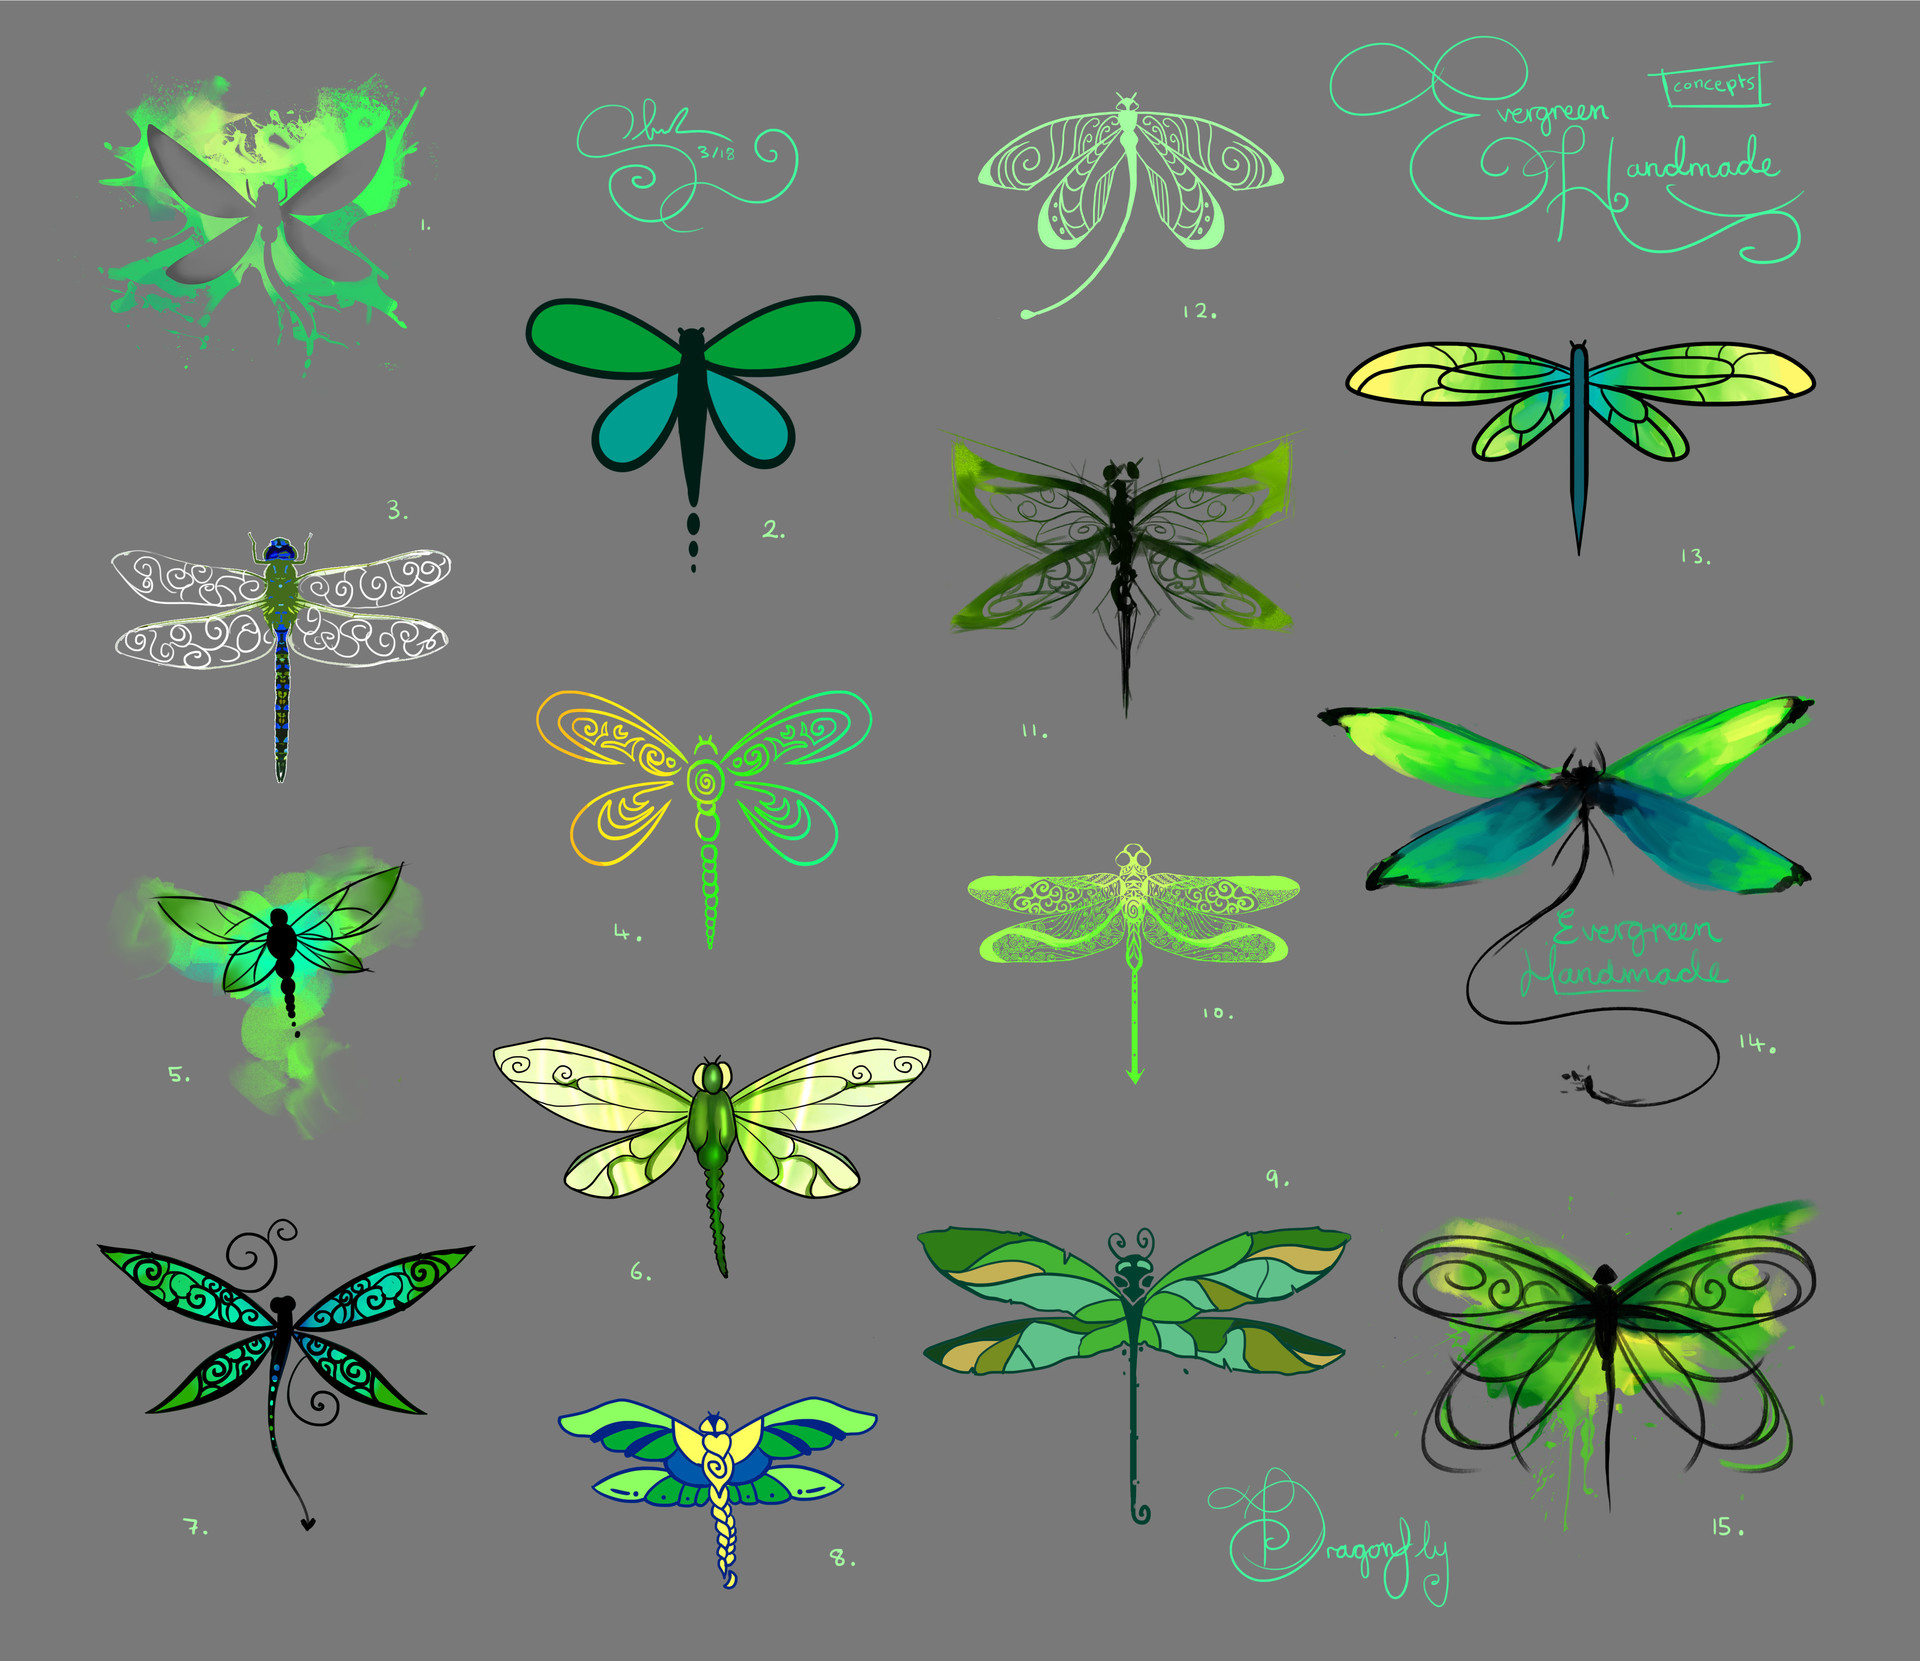 Shellz art 2 dragonfly concepts